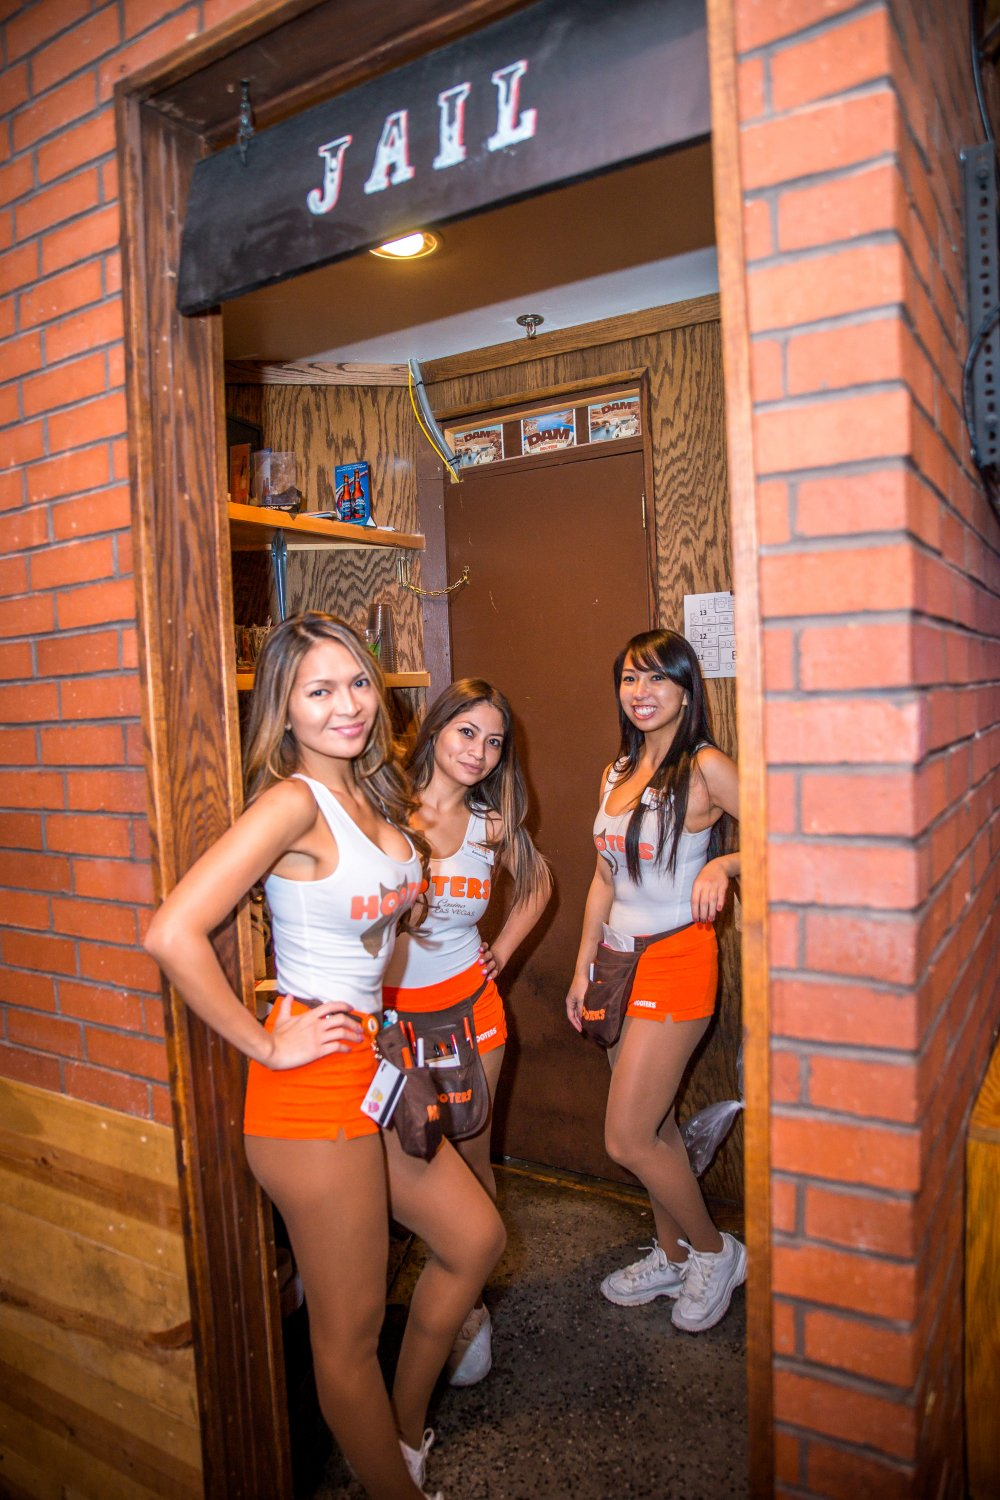 Hooters casino coupon rent wagering accounts from online gambling websites